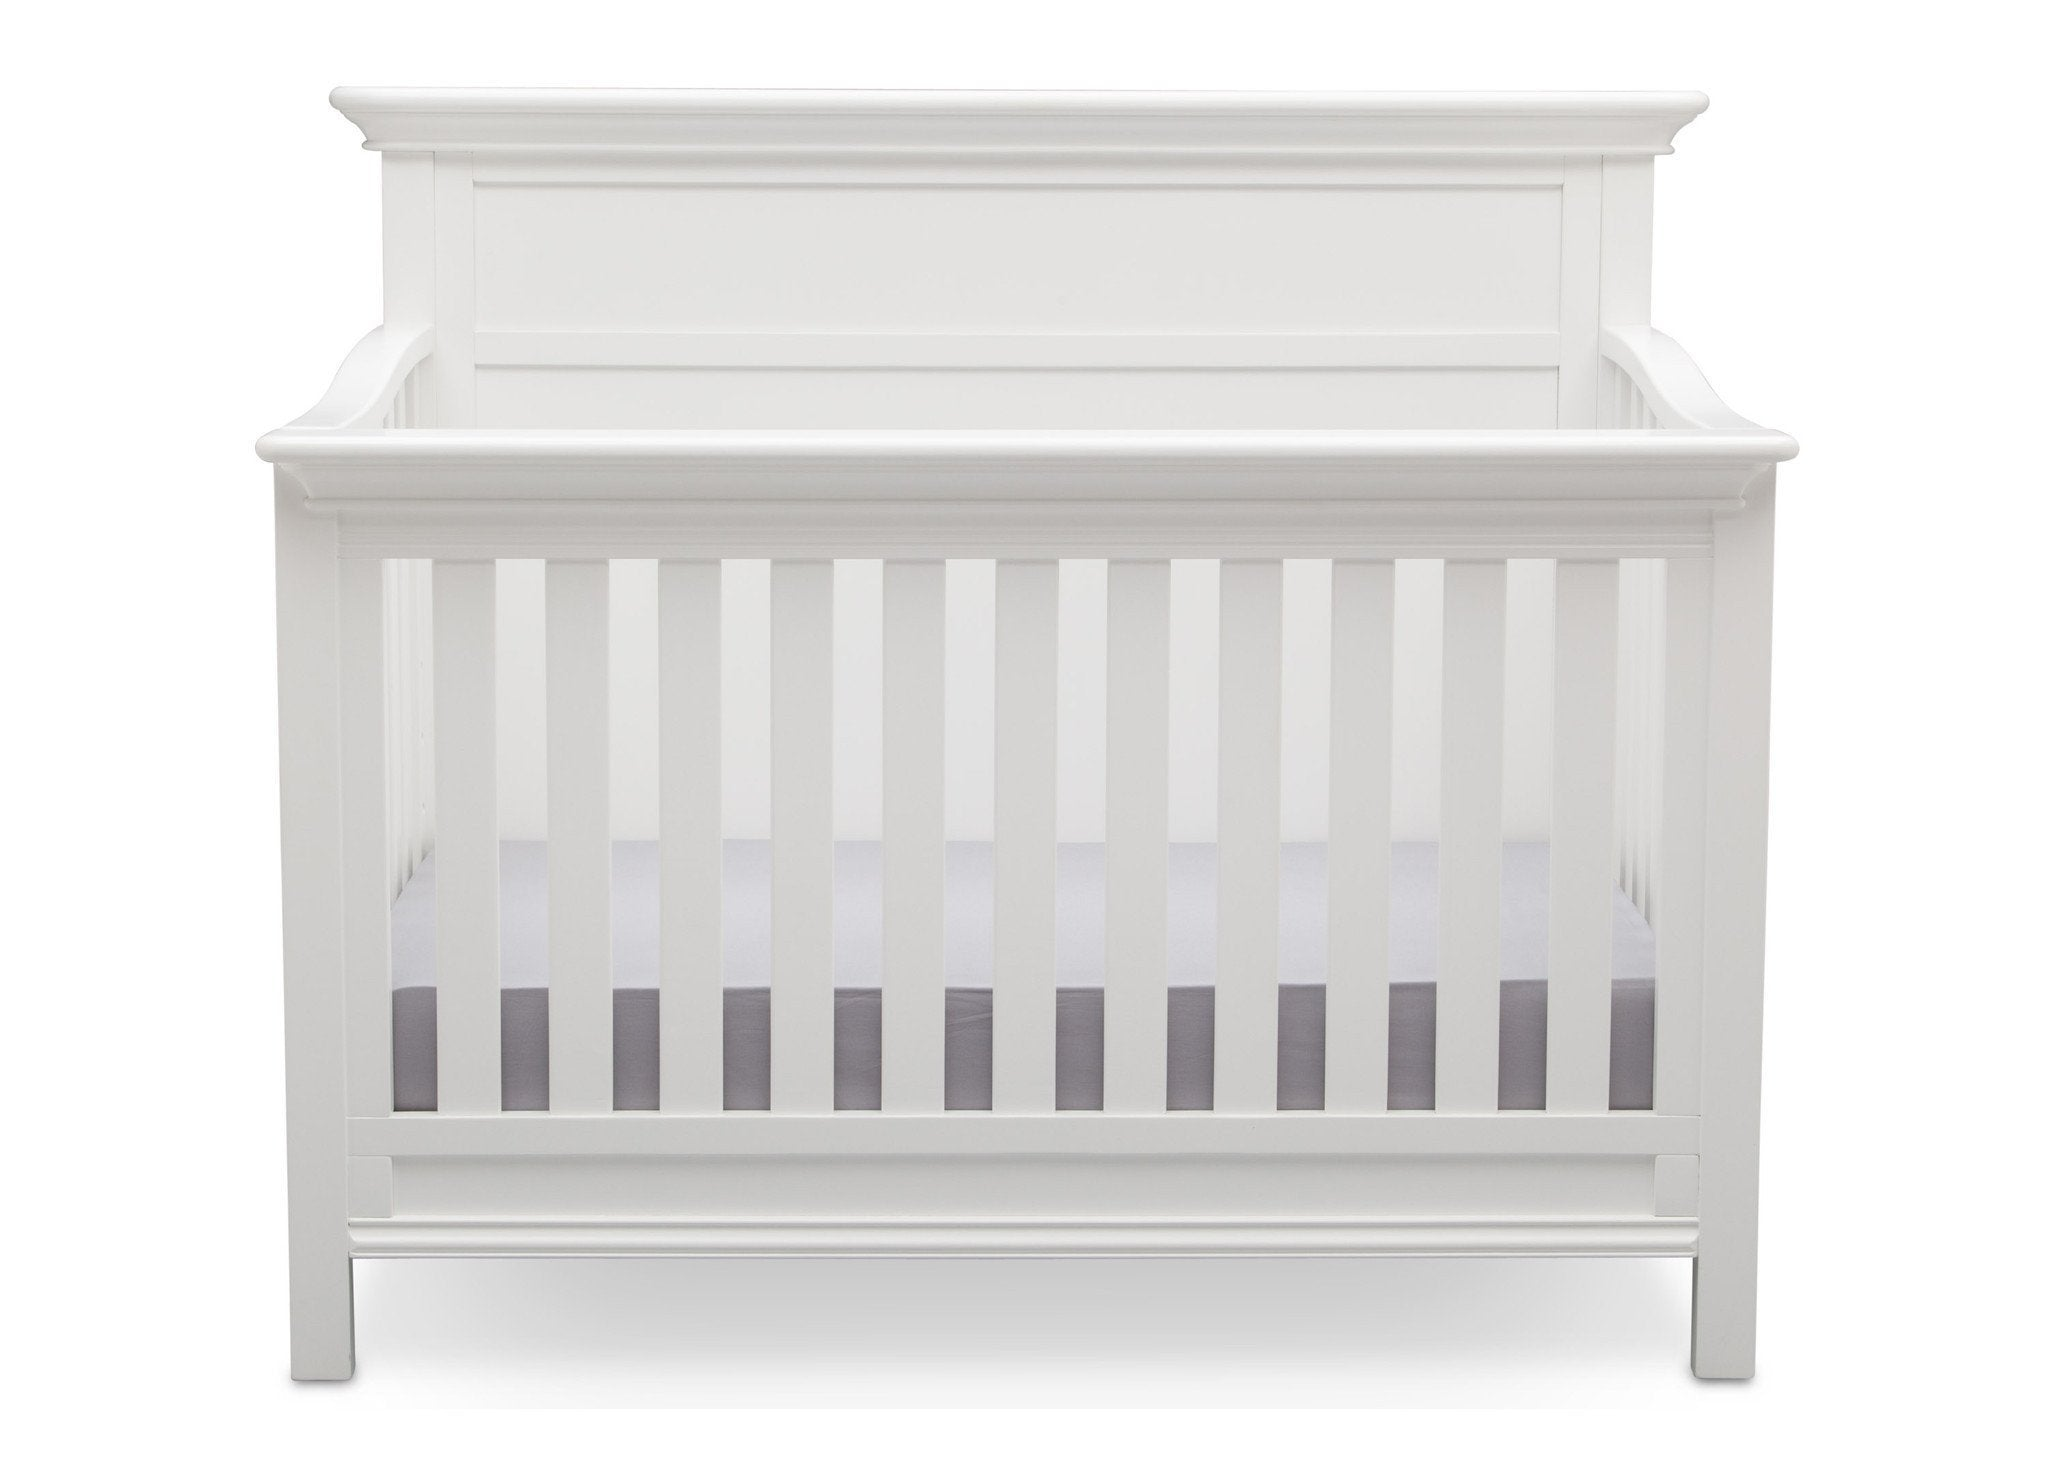 Serta Bianca White (130) Fairmount 4-in-1 Crib, Front View with Crib Conversion a3a